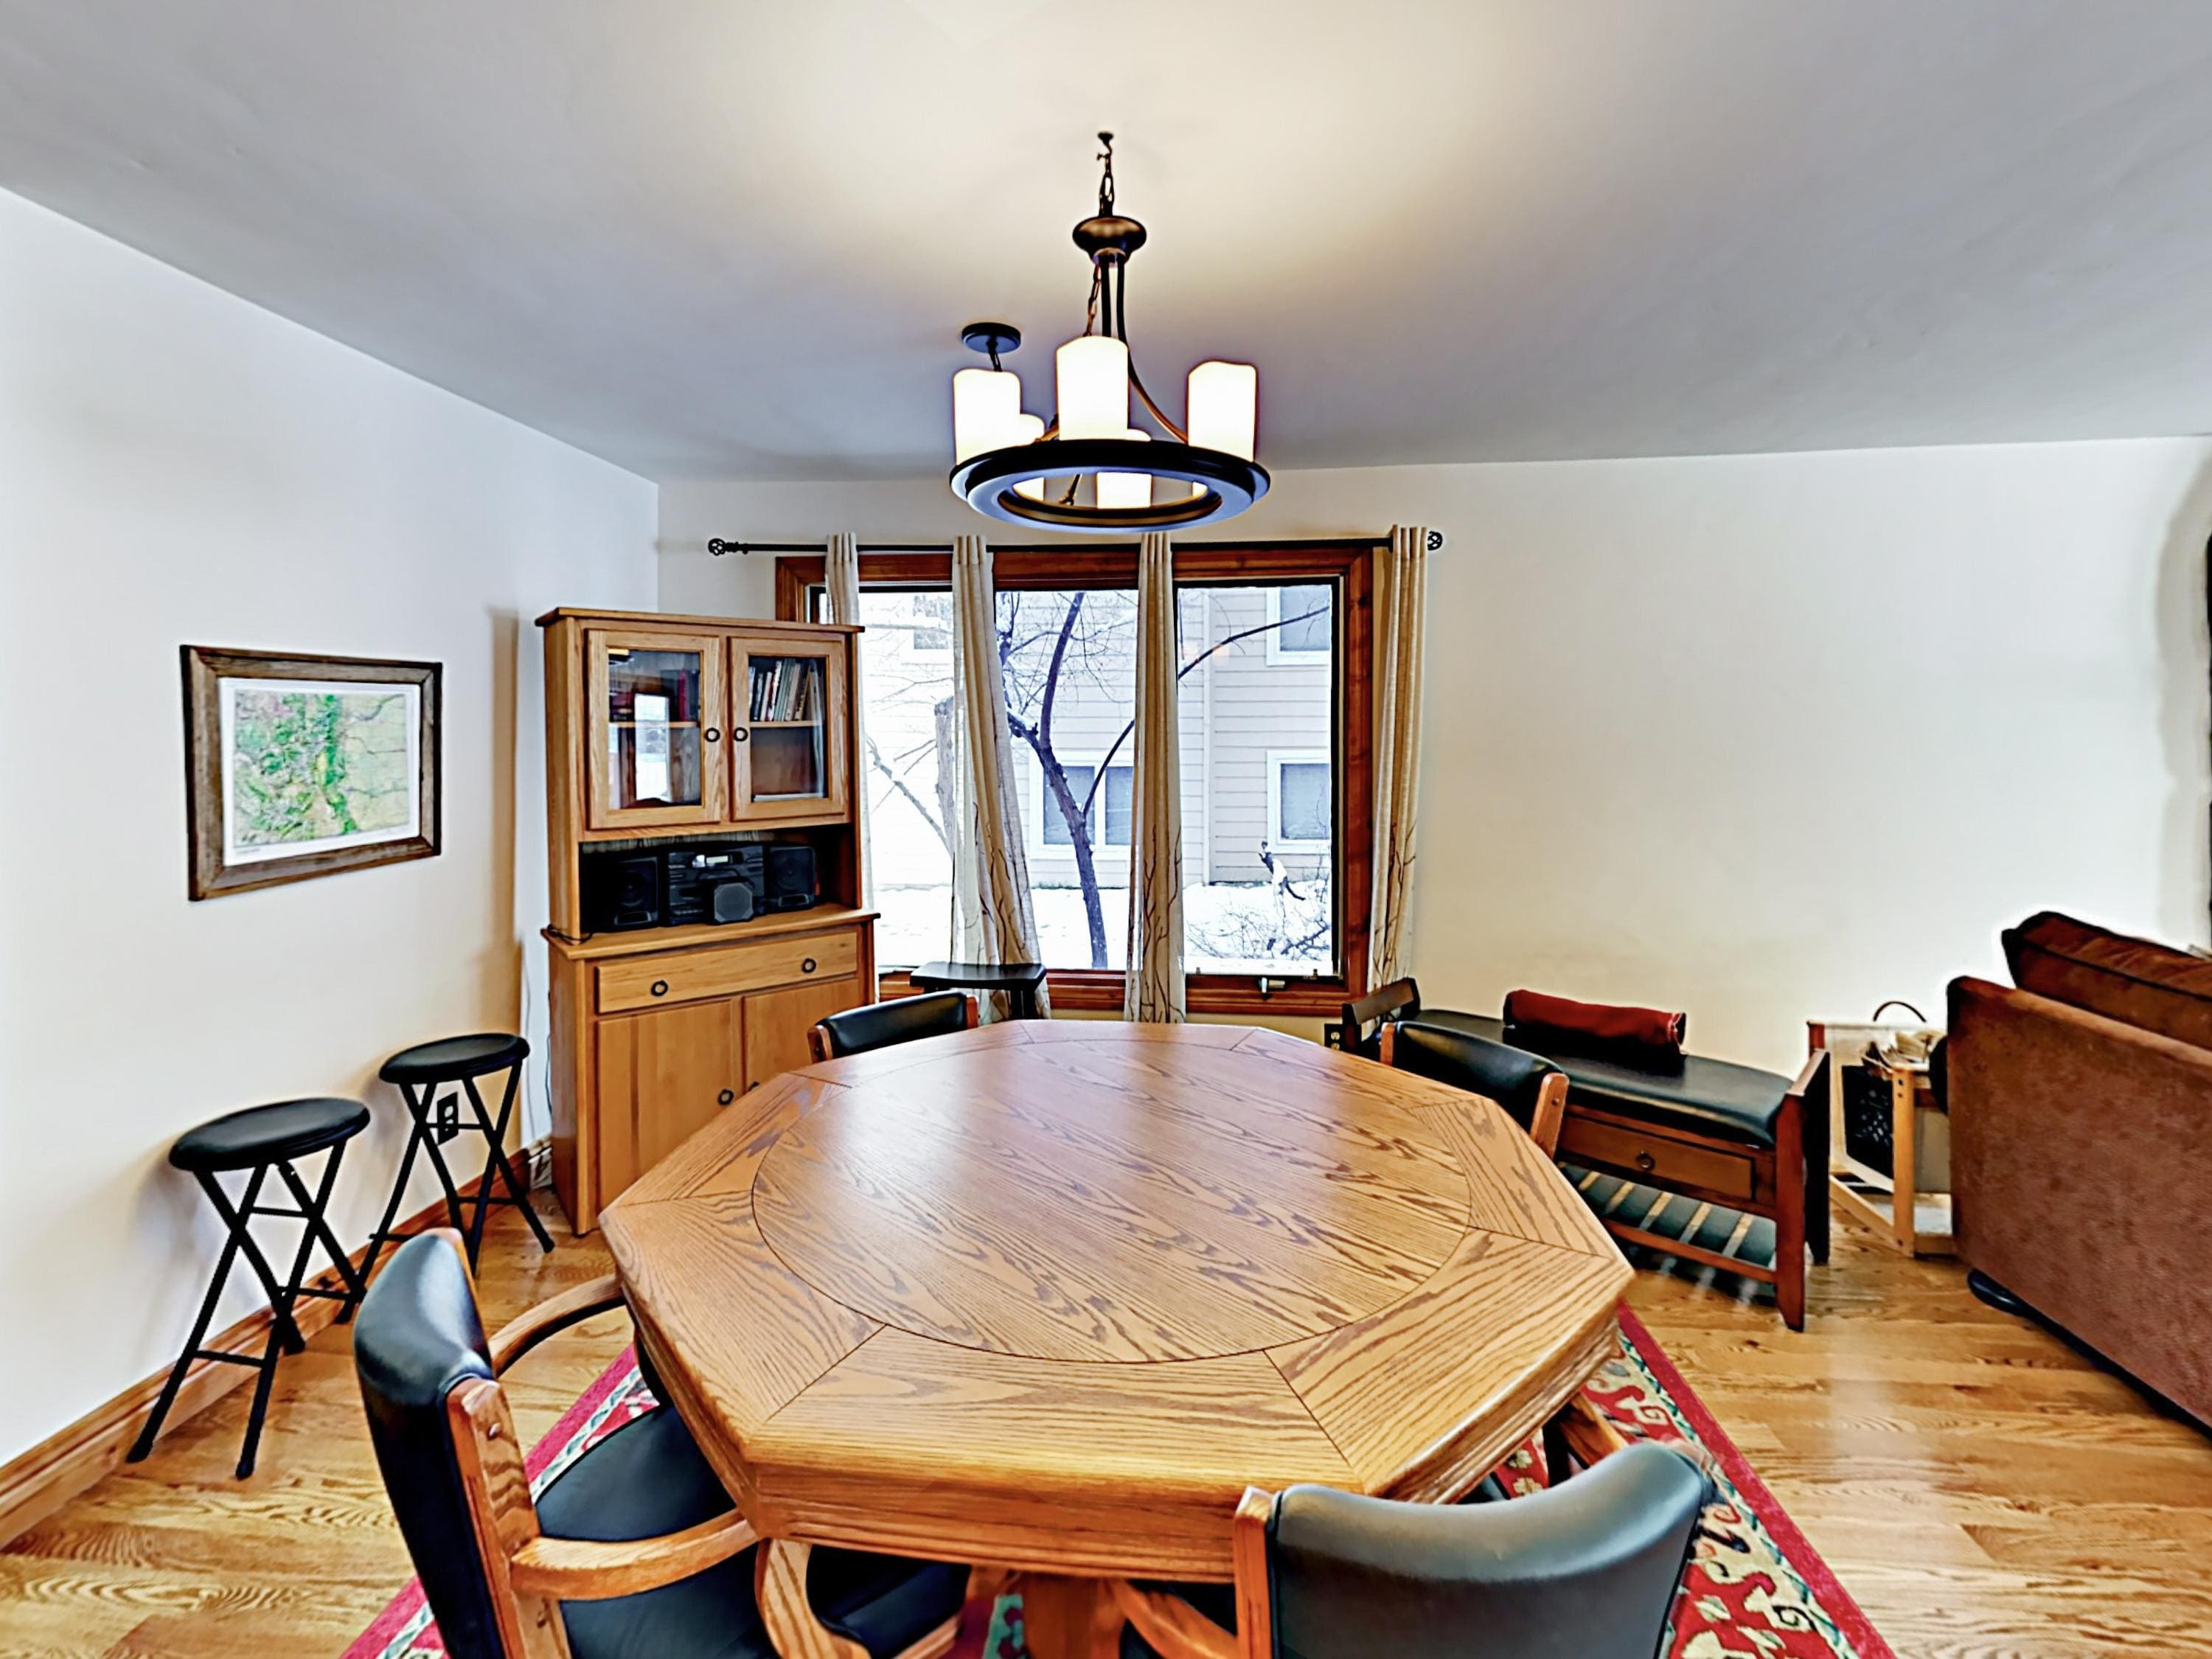 A wooden dining table offers comfy seating for 4.